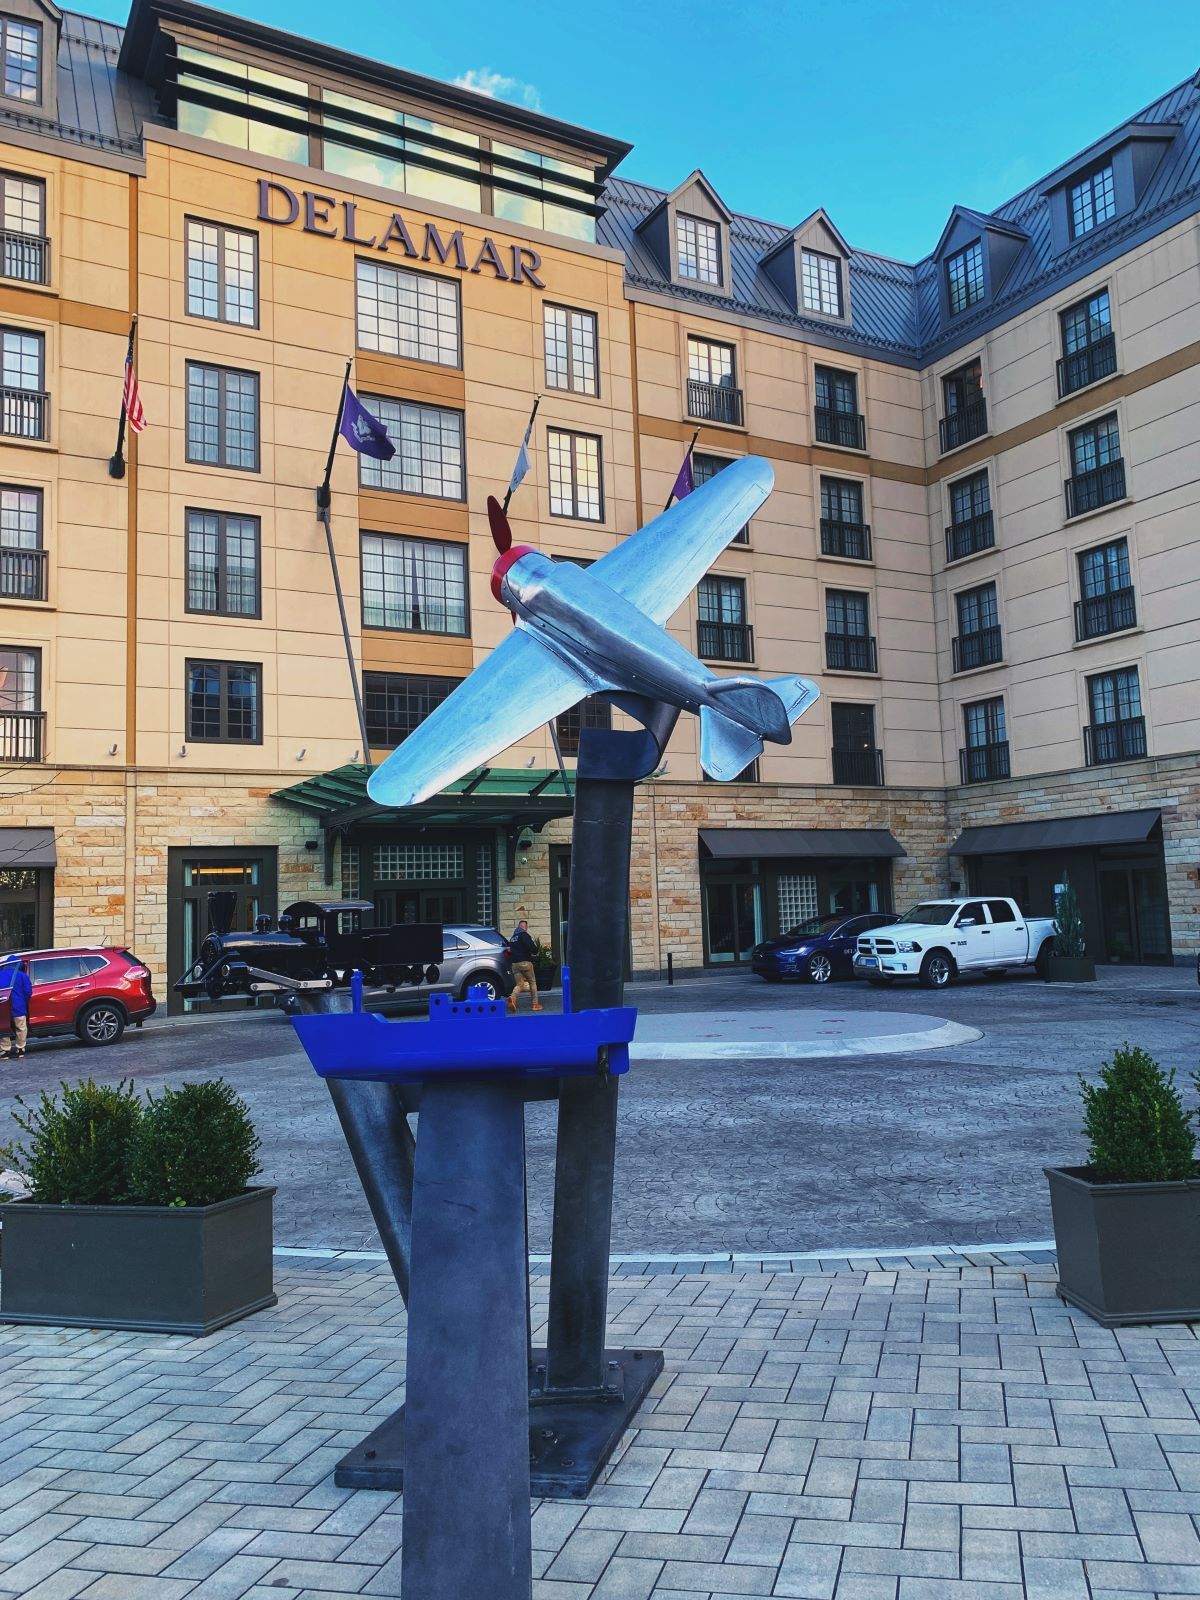 The exterior of the Delamar hotel in West Hartford, CT. An artistic rendering of a plane before the hotel's circular driveway is depicted.